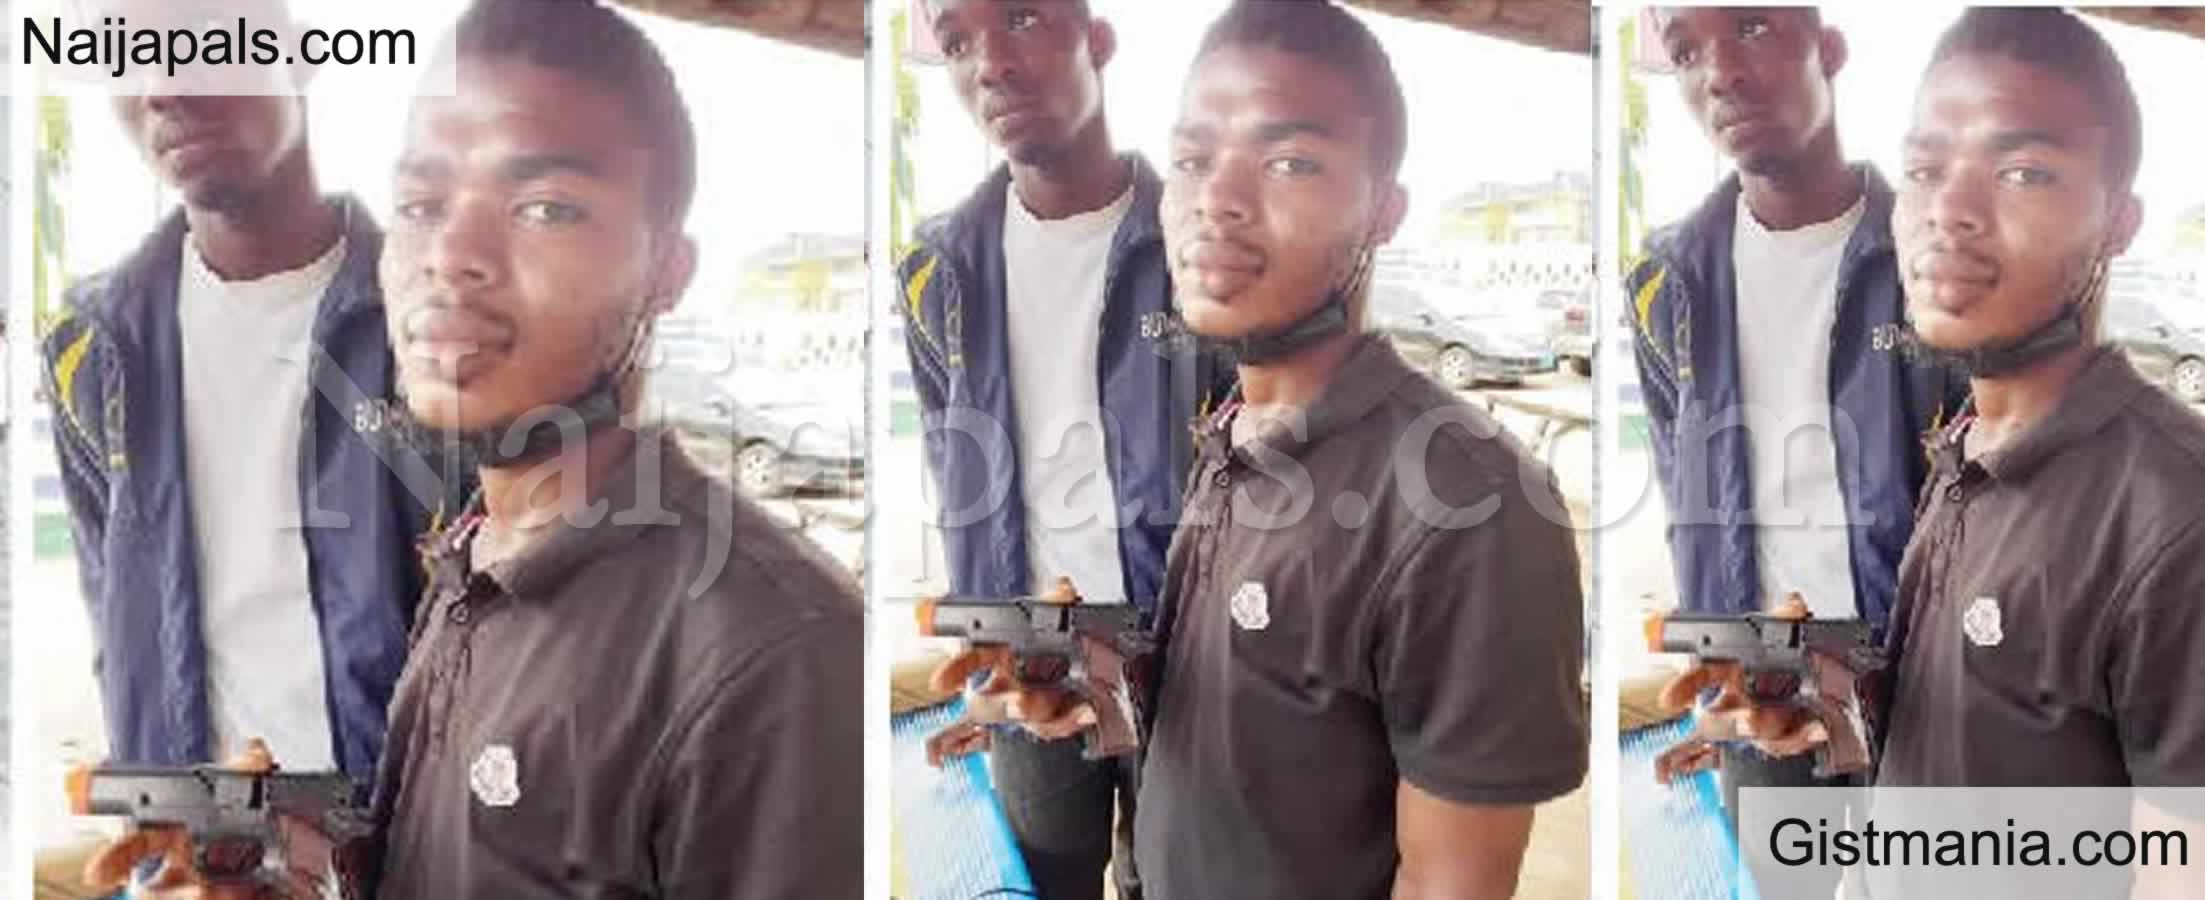 <img alt='.' class='lazyload' data-src='https://img.gistmania.com/emot/news.gif' /> <b>Two Men, Kehinde & Ayomide Arrested For Robbing Lagos Residents With Fake Pistol</b>